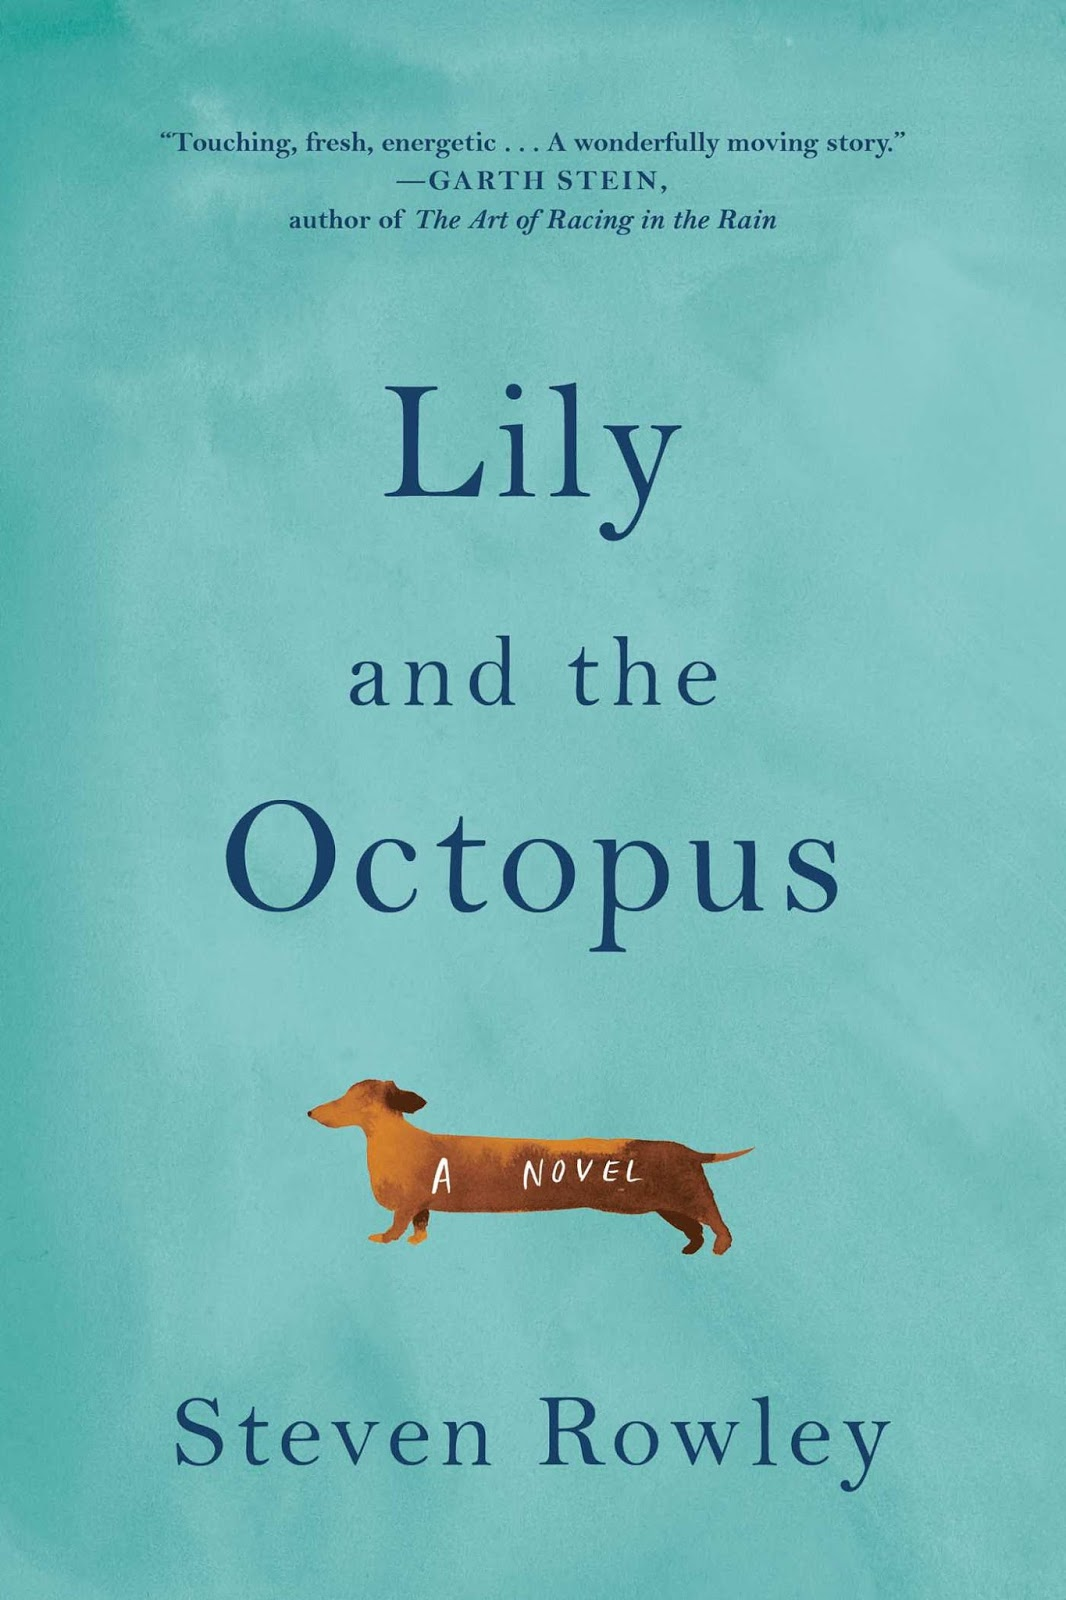 If You Have Ever Loved A Dog Chances Are Will Love This Book I Know Shed Lots Of Eye Rain Lilys Name For Tears At The Touching And Affecting Way